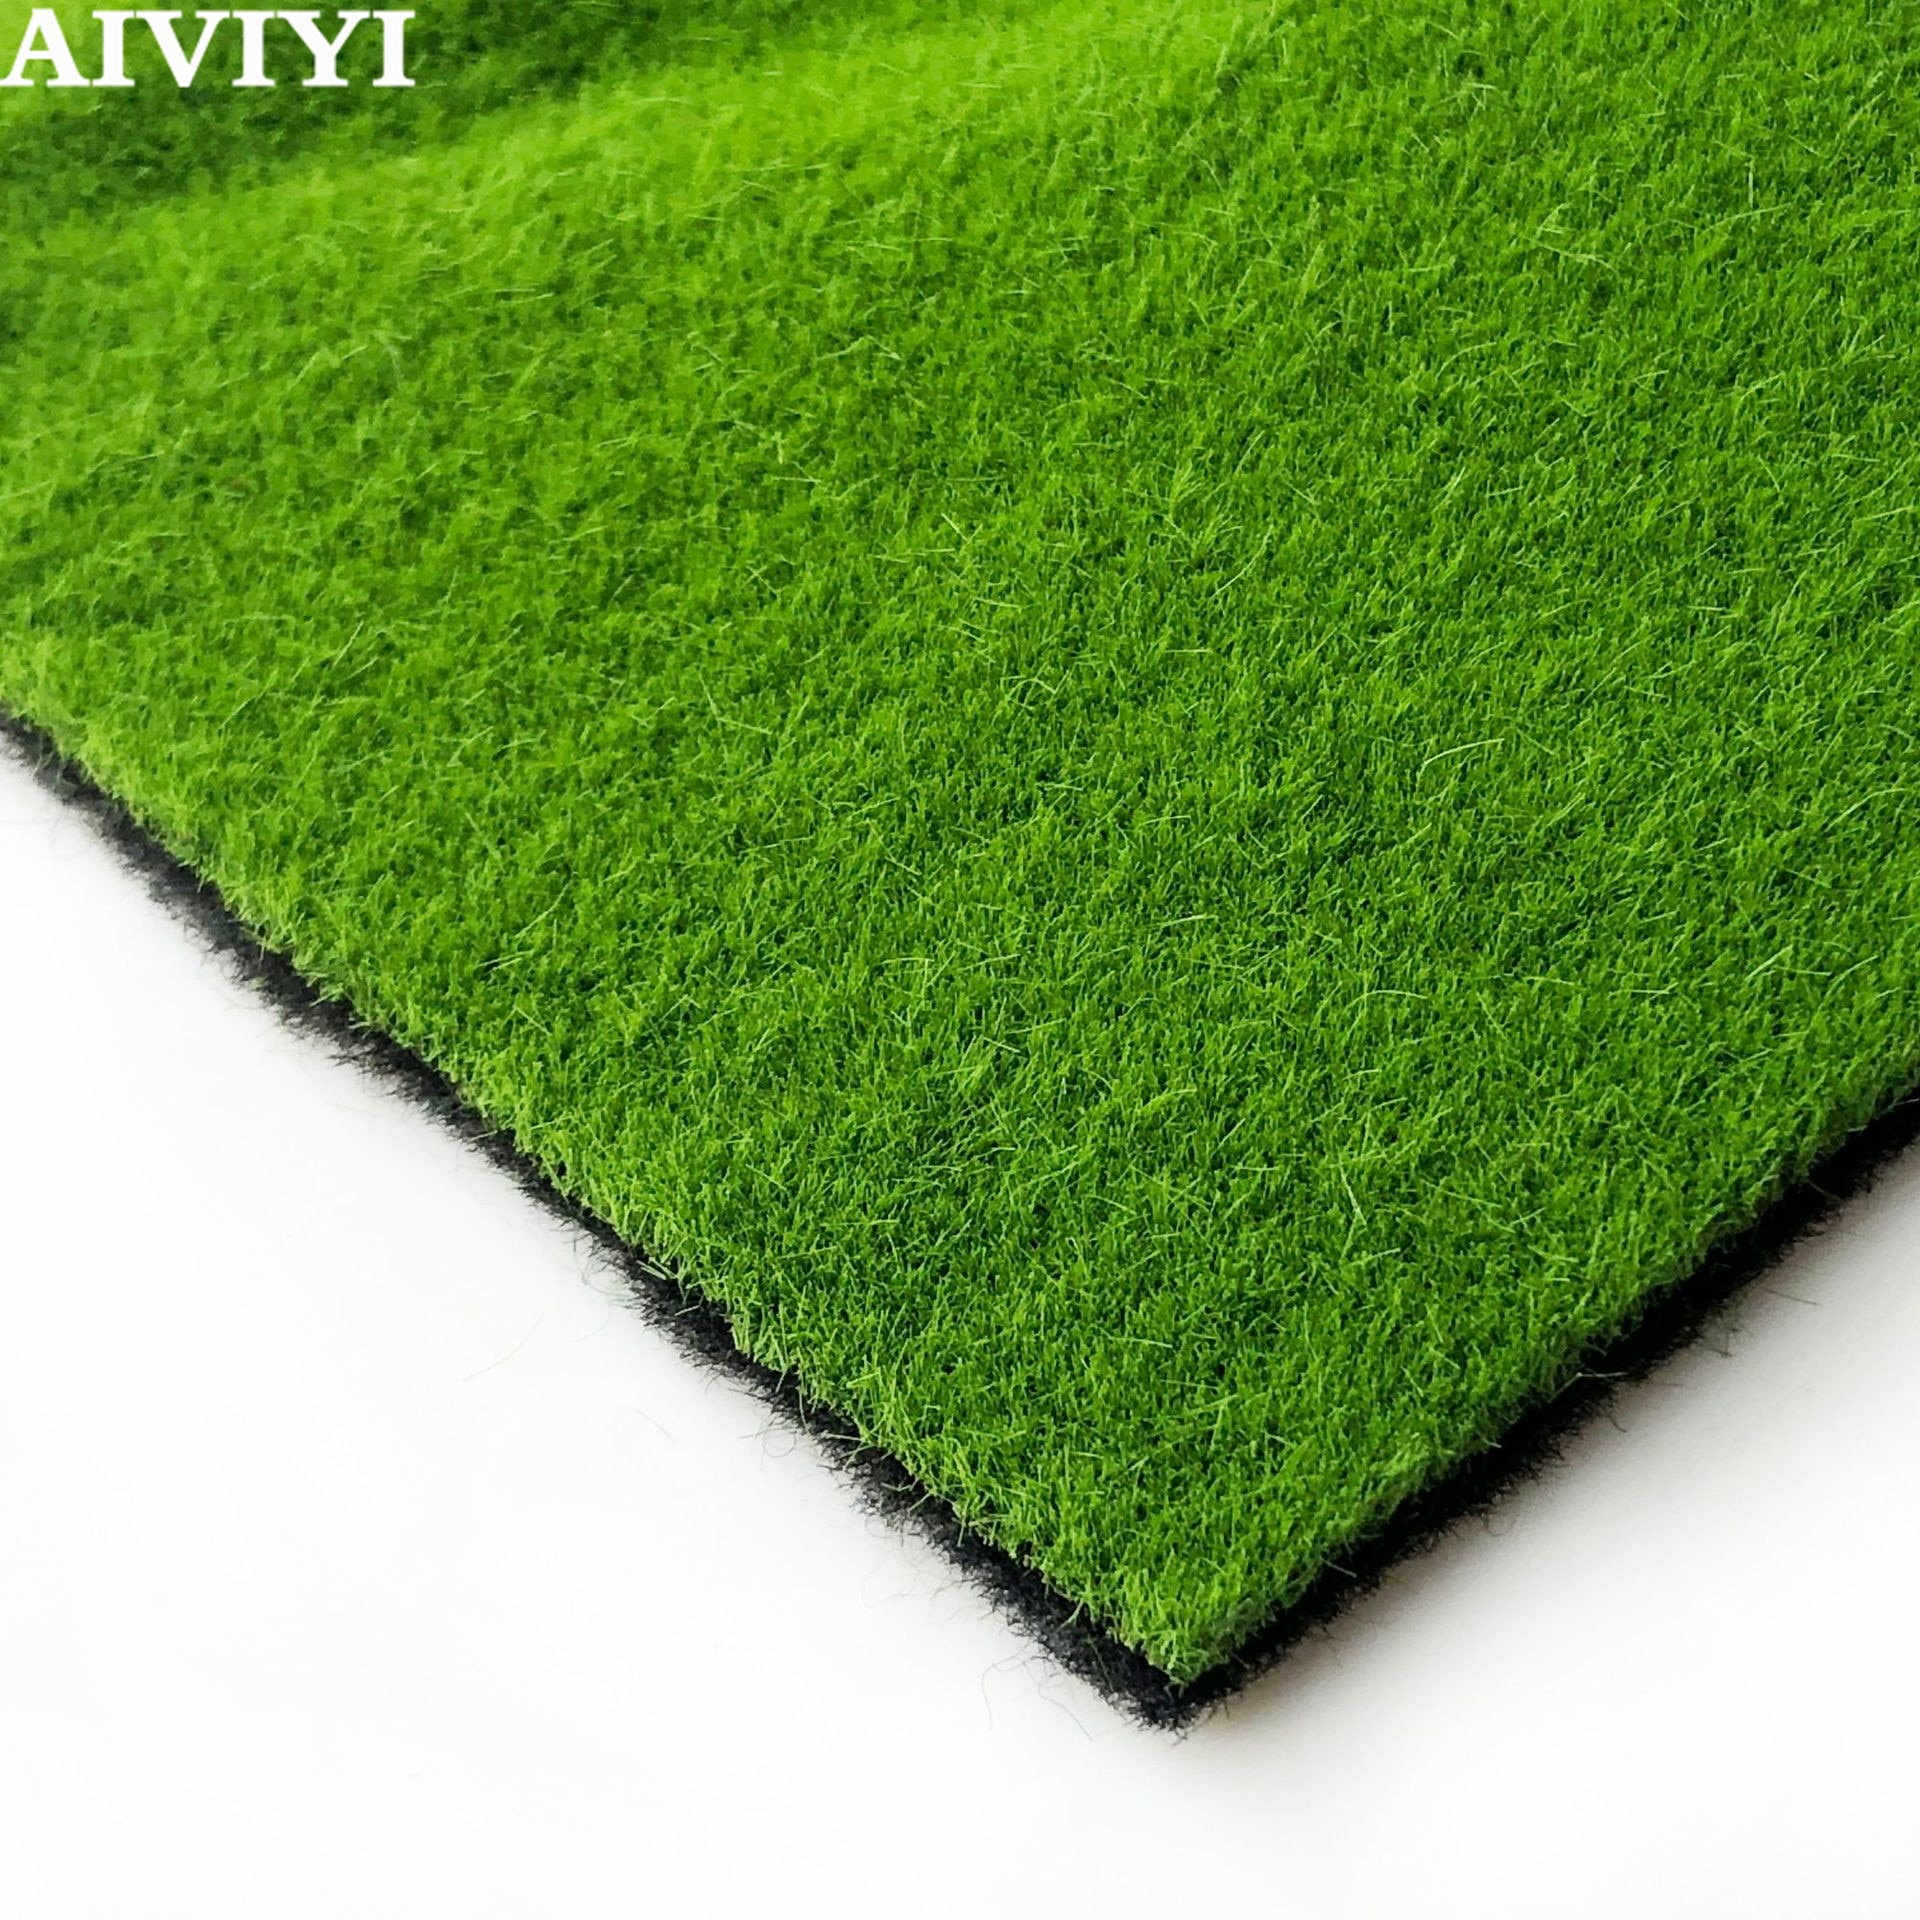 Artificial Moss Lawn Simulation Turf Wall Green Plant DIY Artificial Grass Wedding Mini Garden Micro Eco Bottle Decoration